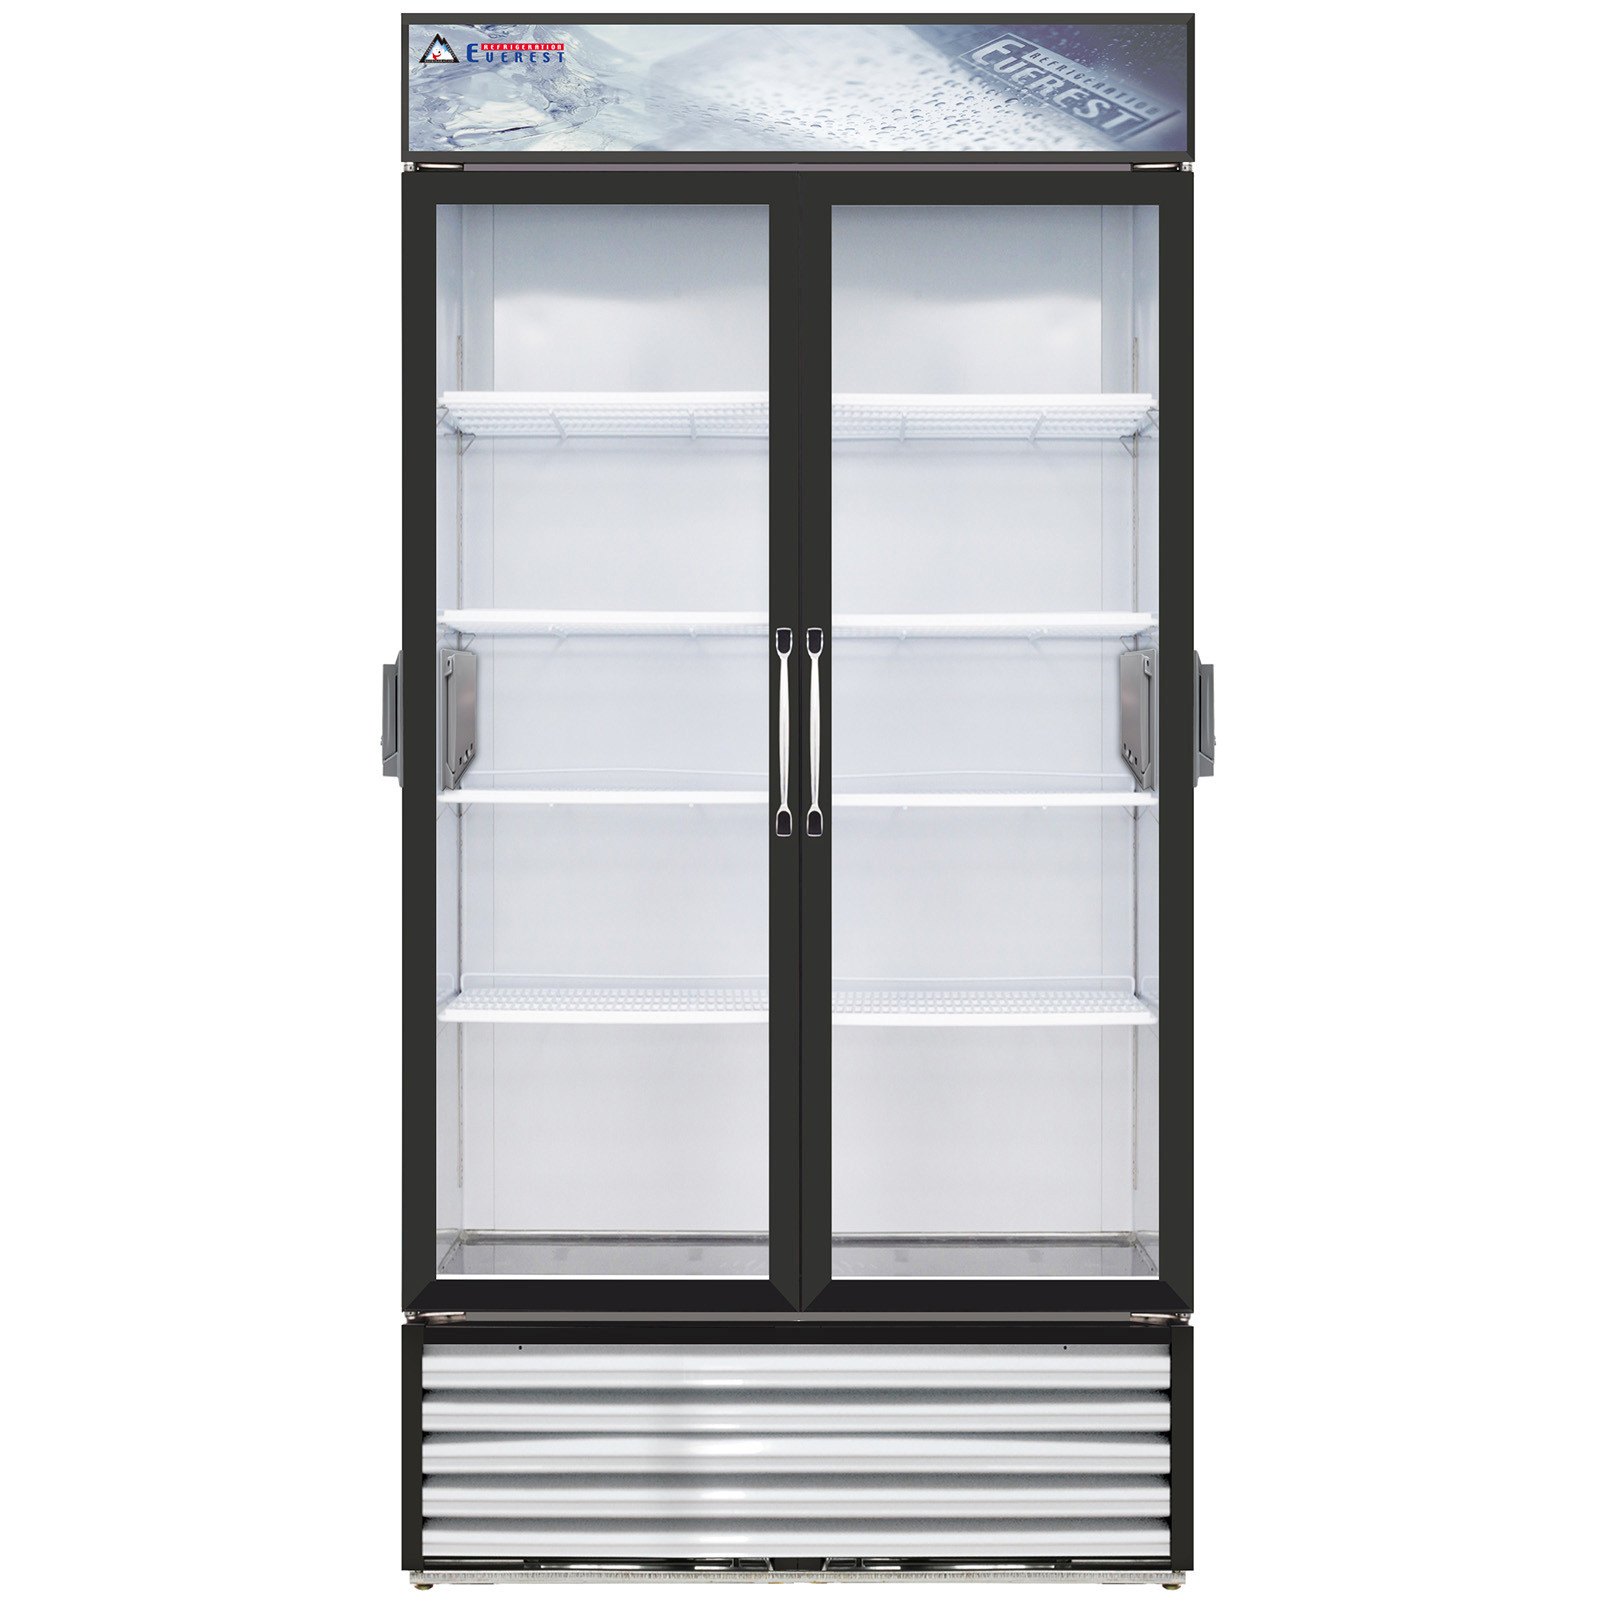 Doors Everest Everest Emgr48c Chromatography Refrigerator W Two Glass